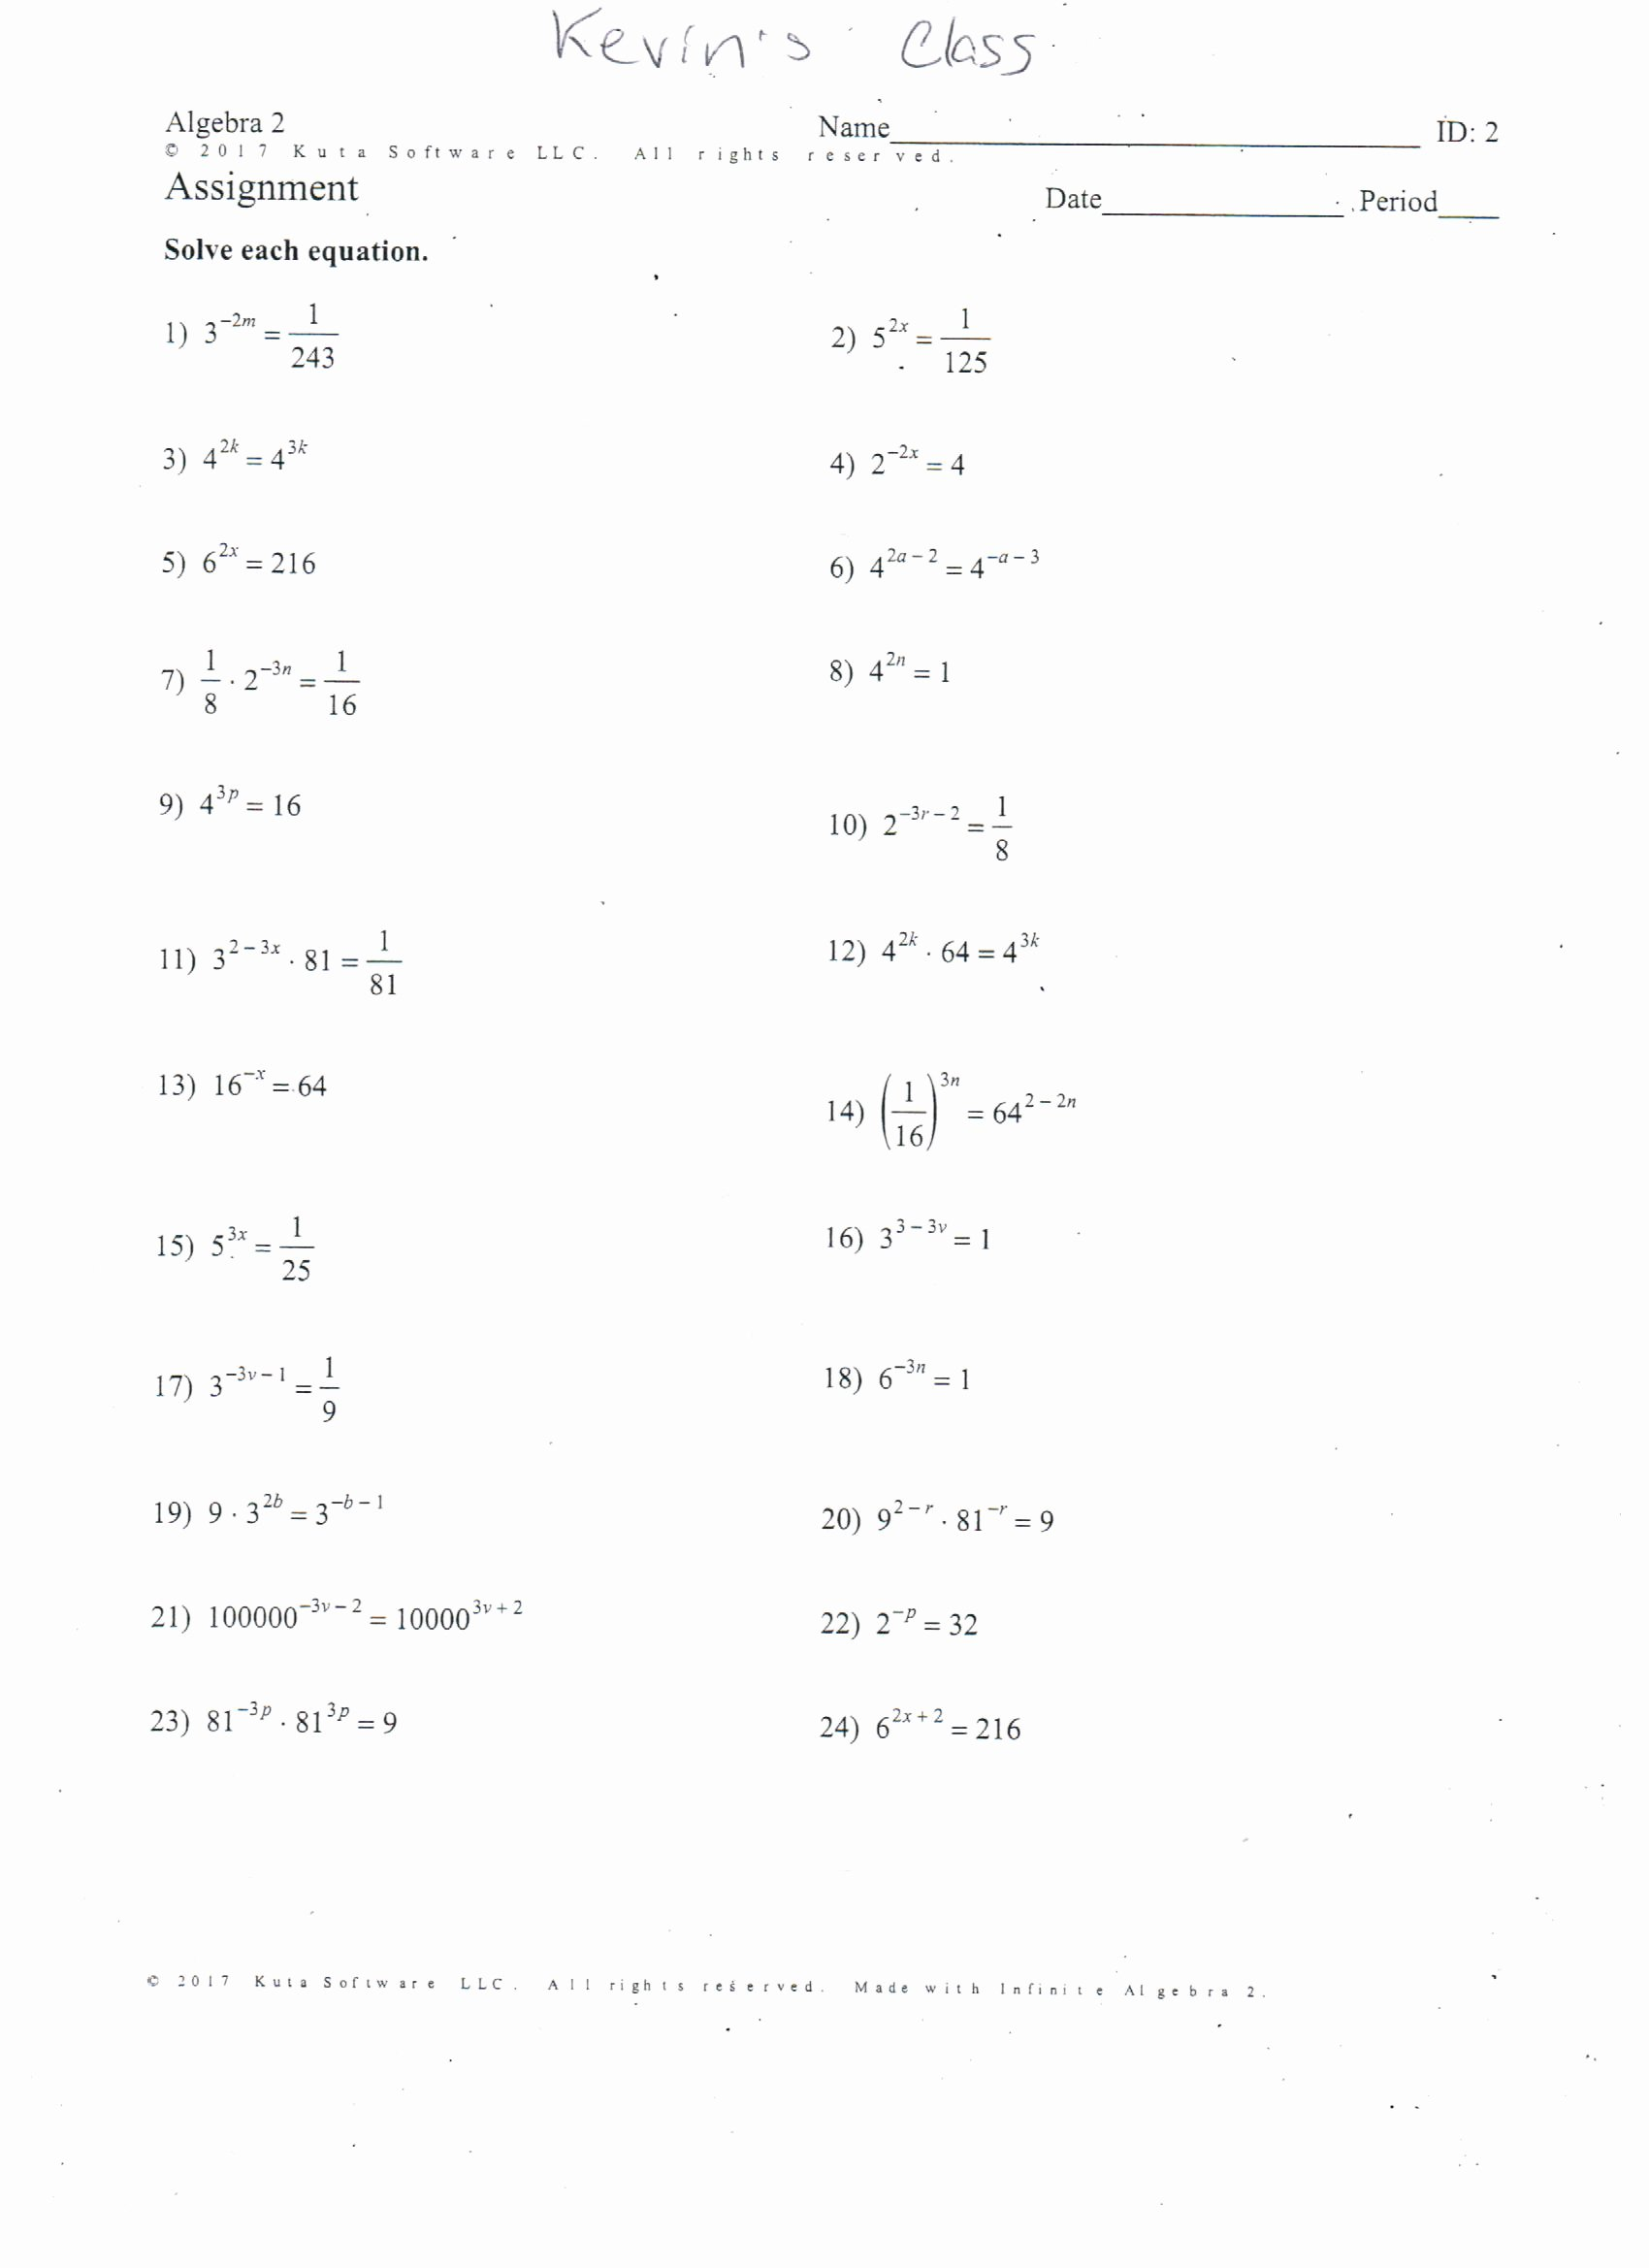 Factoring Quadratics Worksheet Answers Lovely solving Quadratic Equations by Factoring Worksheet Answers